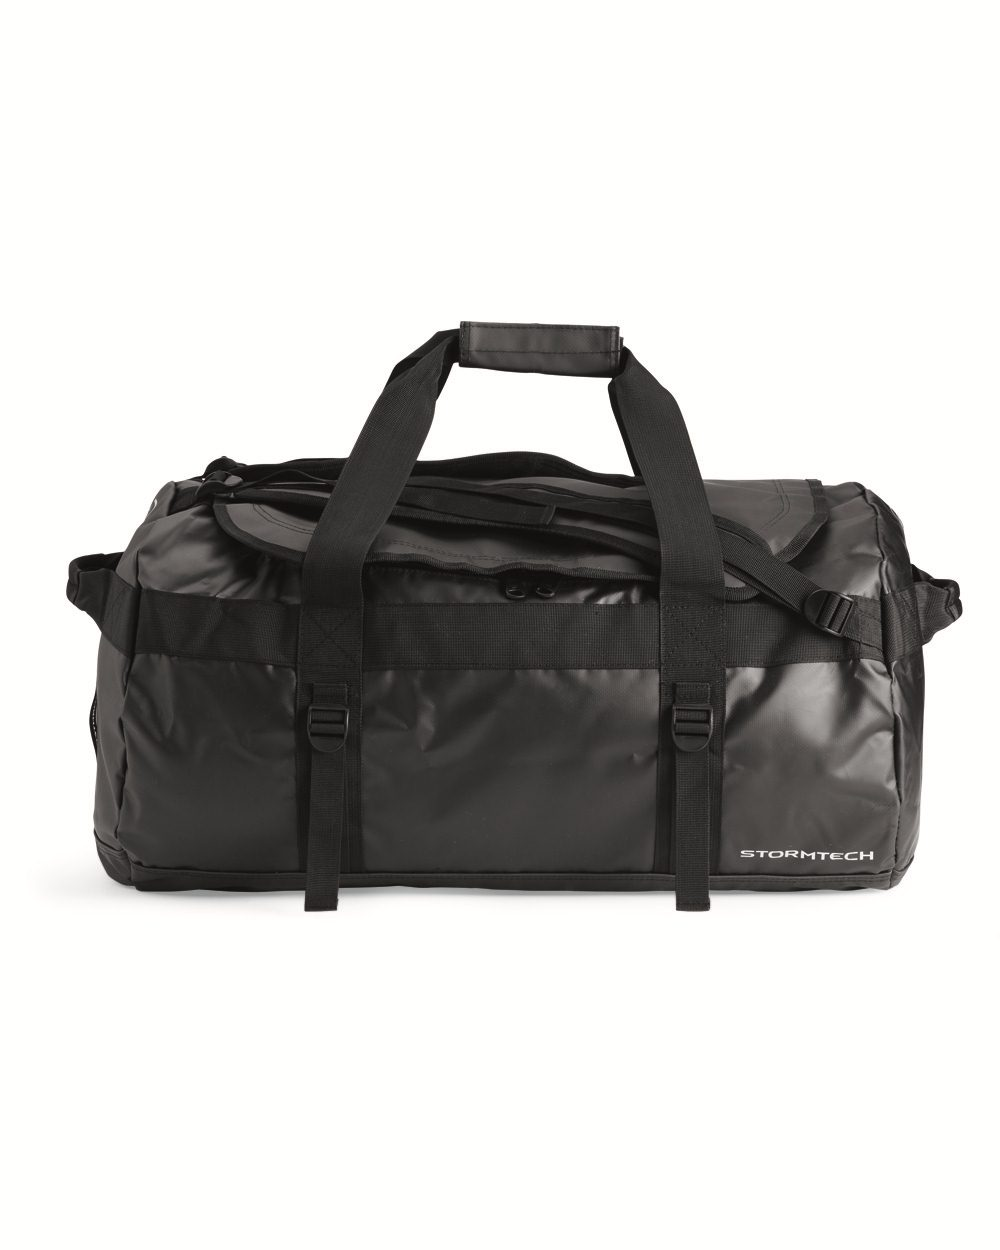 Stormtech Waterproof Medium Gear Bag - GBW-1M